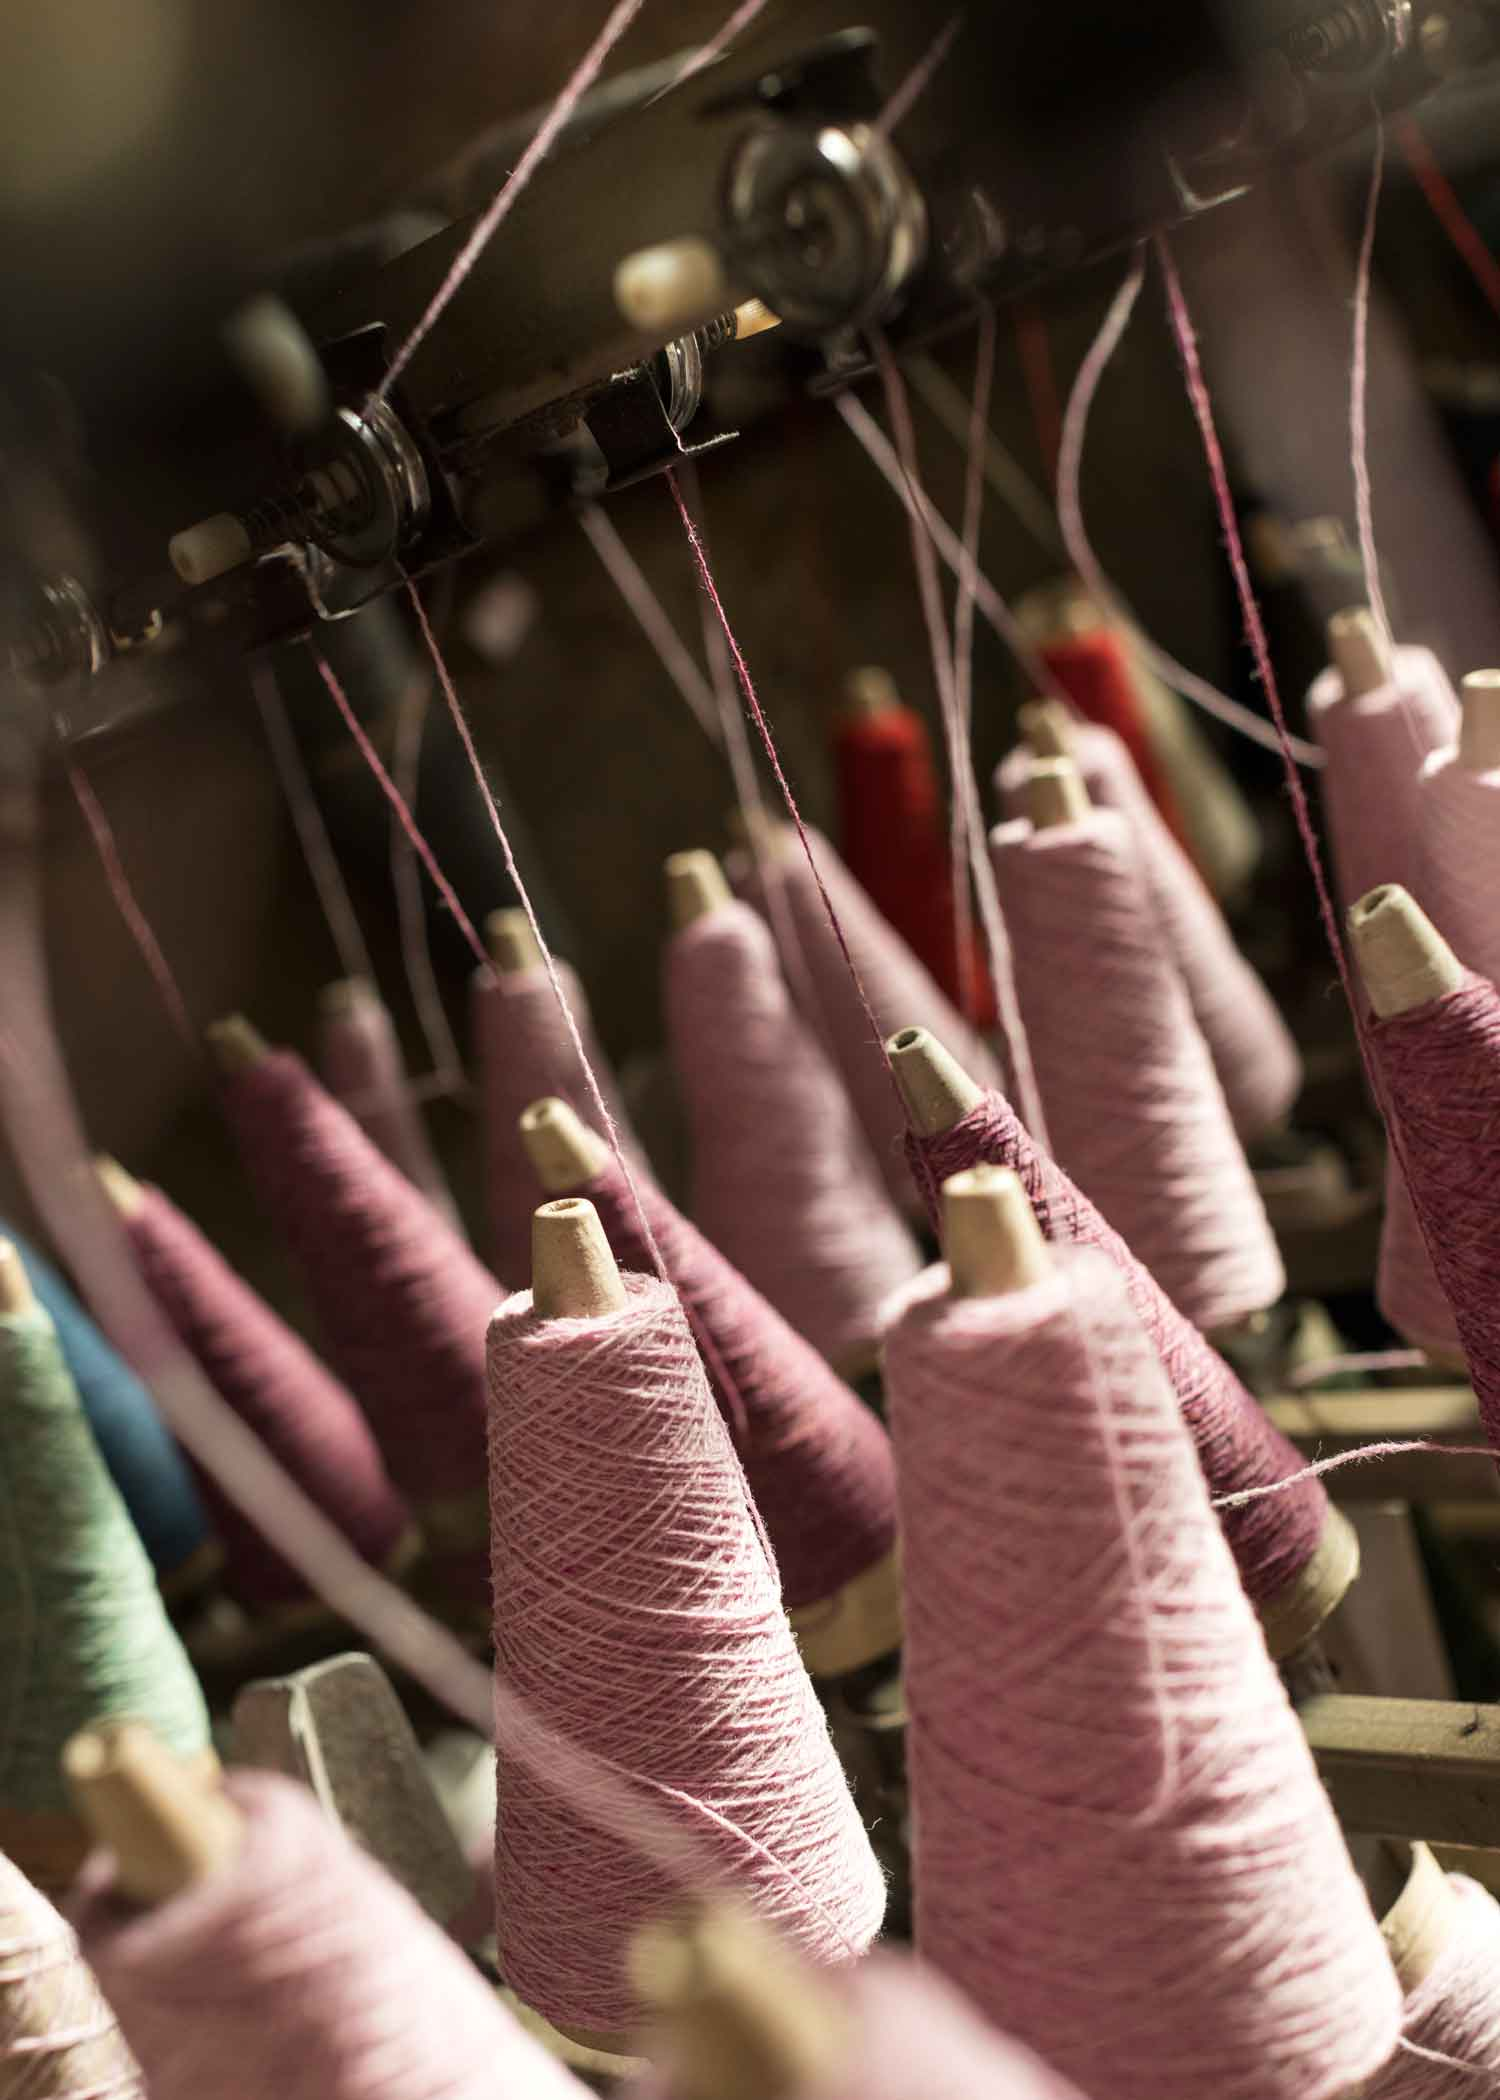 British Mills - The wools we use are spun by an English family mill that has been running since 1766. This long succession has enabled valuable knowledge to be passed down through the generations to create a product of the softest and most superior quality.The raw material is shipped not flown and comes from the Geelong area of Australia which is synonymous with fineness. Colour is an intrinsic part of our designs so our wools must be dyed but the chemicals used in this process by our spinners are less harmful to the environment than that of the bigger global companies and we prefer to use dyes that are to Global Organic Textile Standard wherever possible.